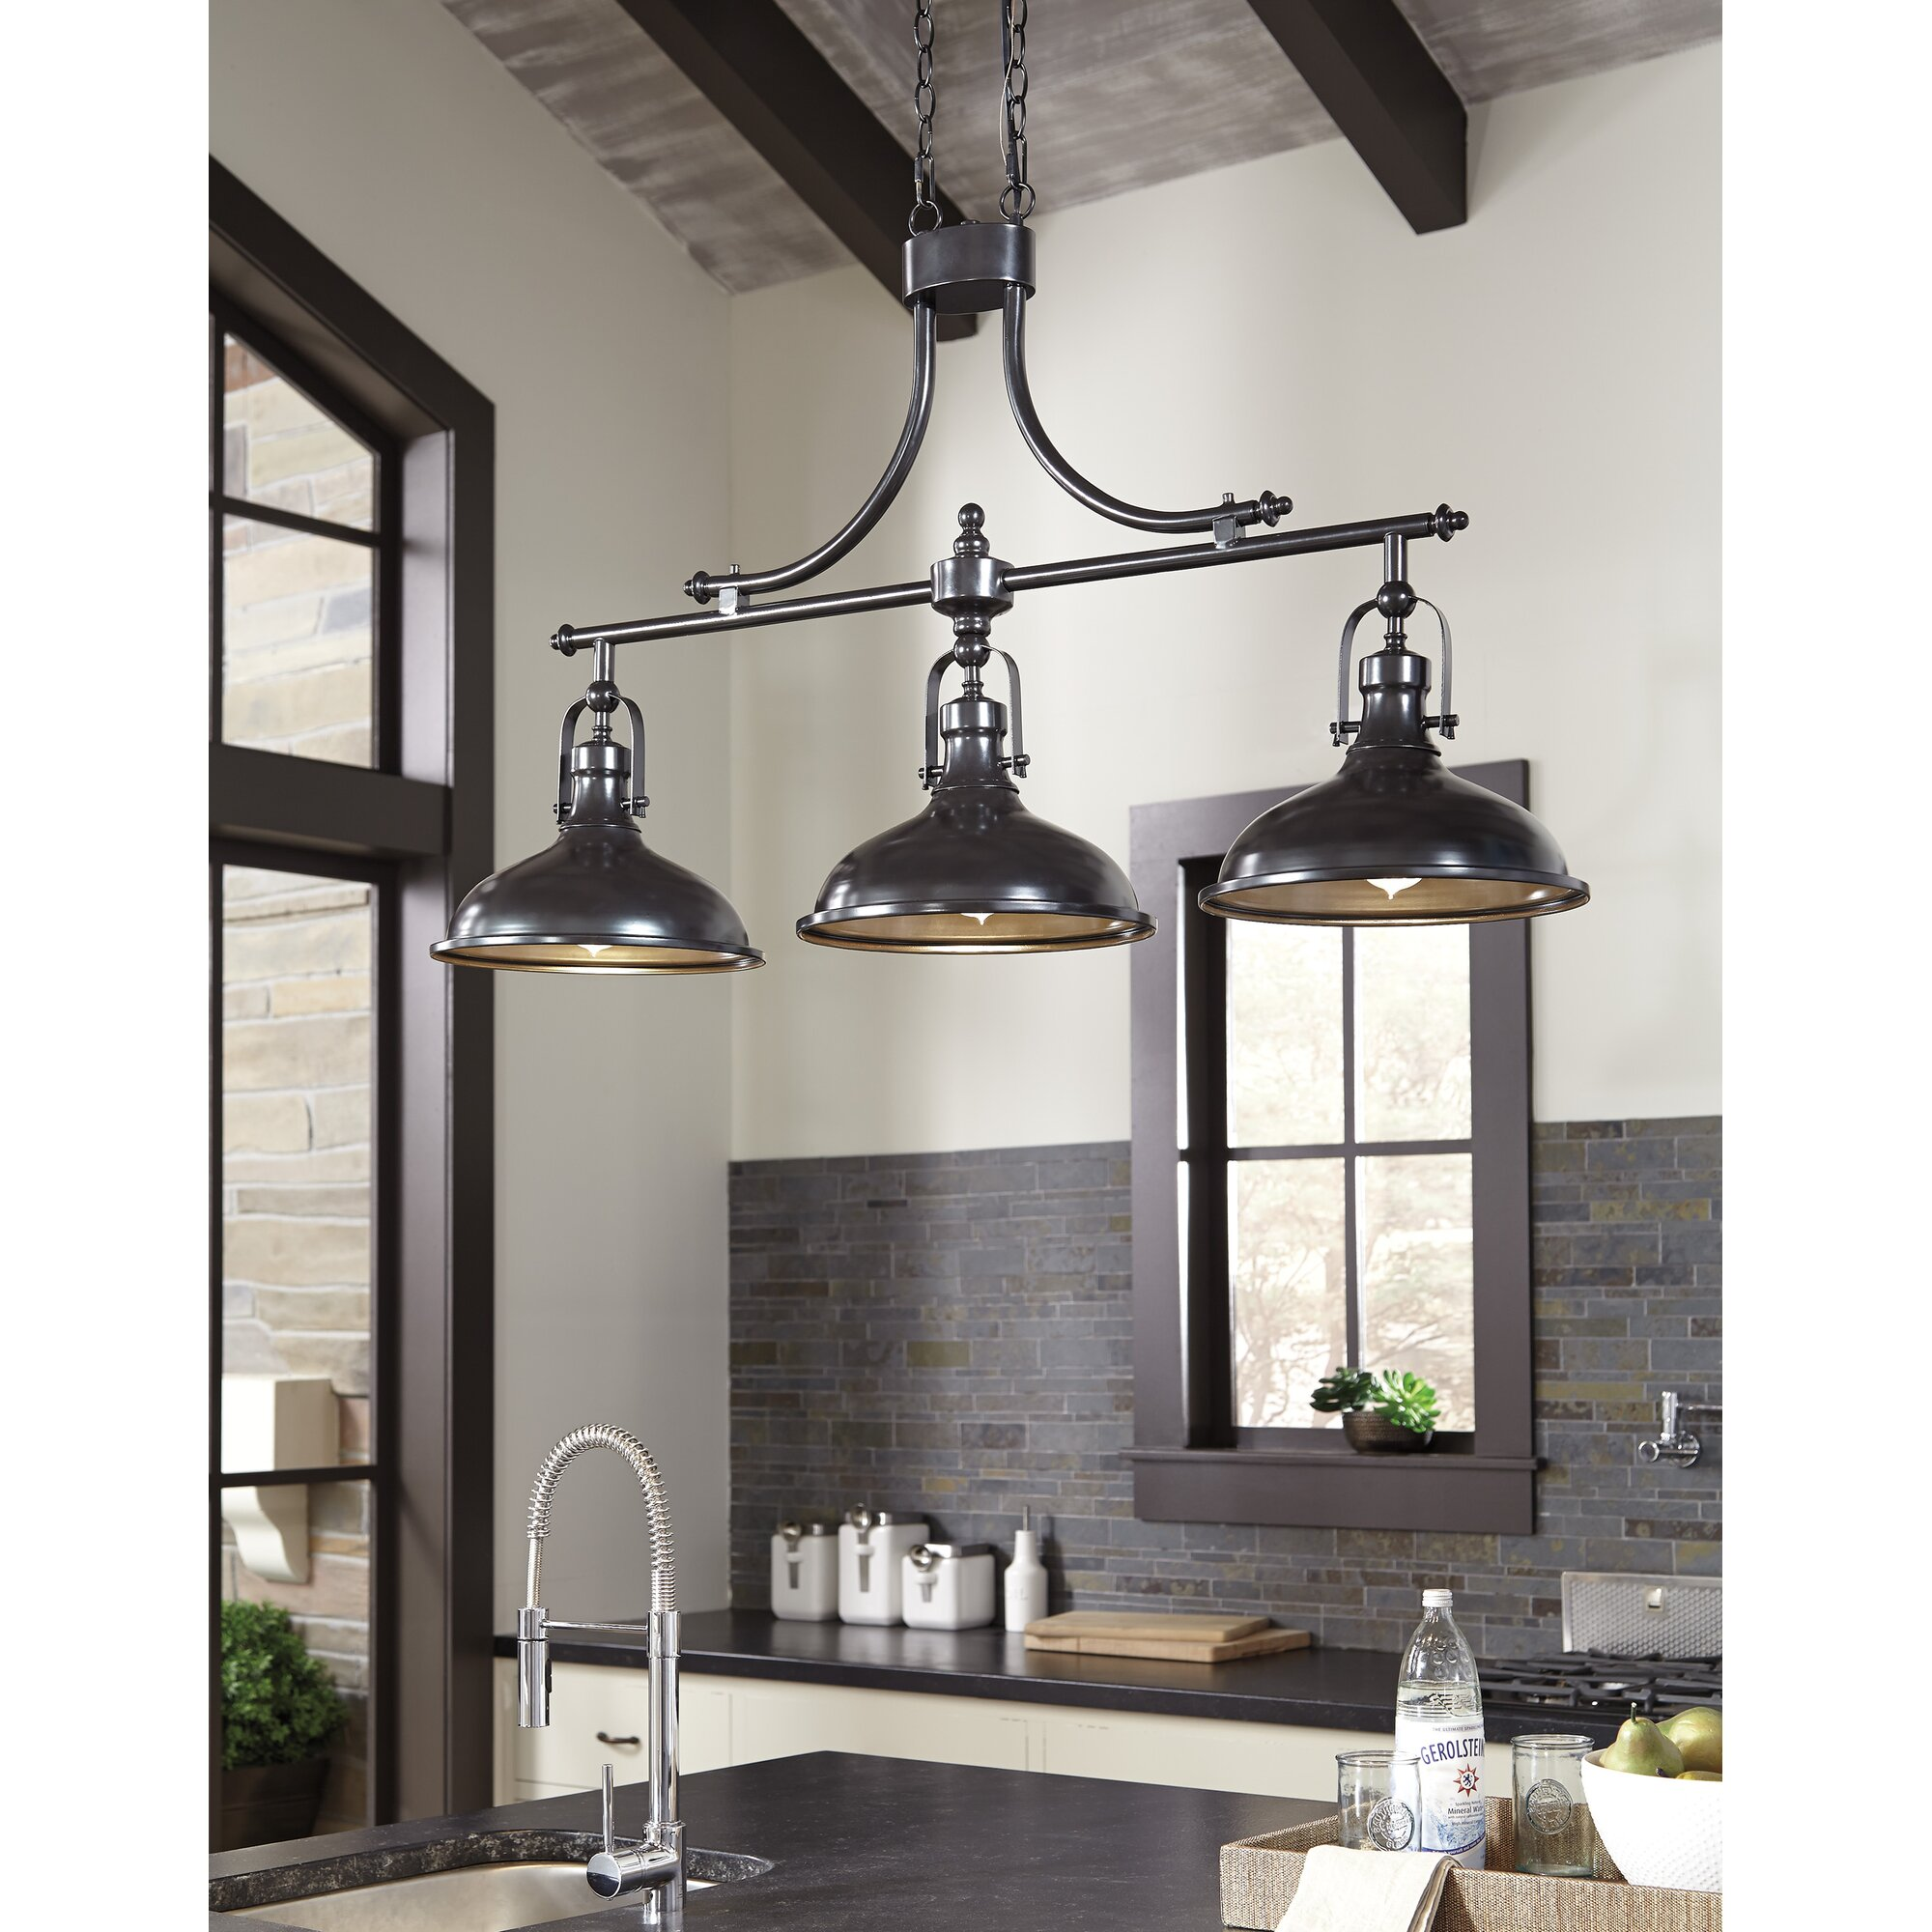 Breakwater Bay Strauss 3-Light Kitchen Island Pendant